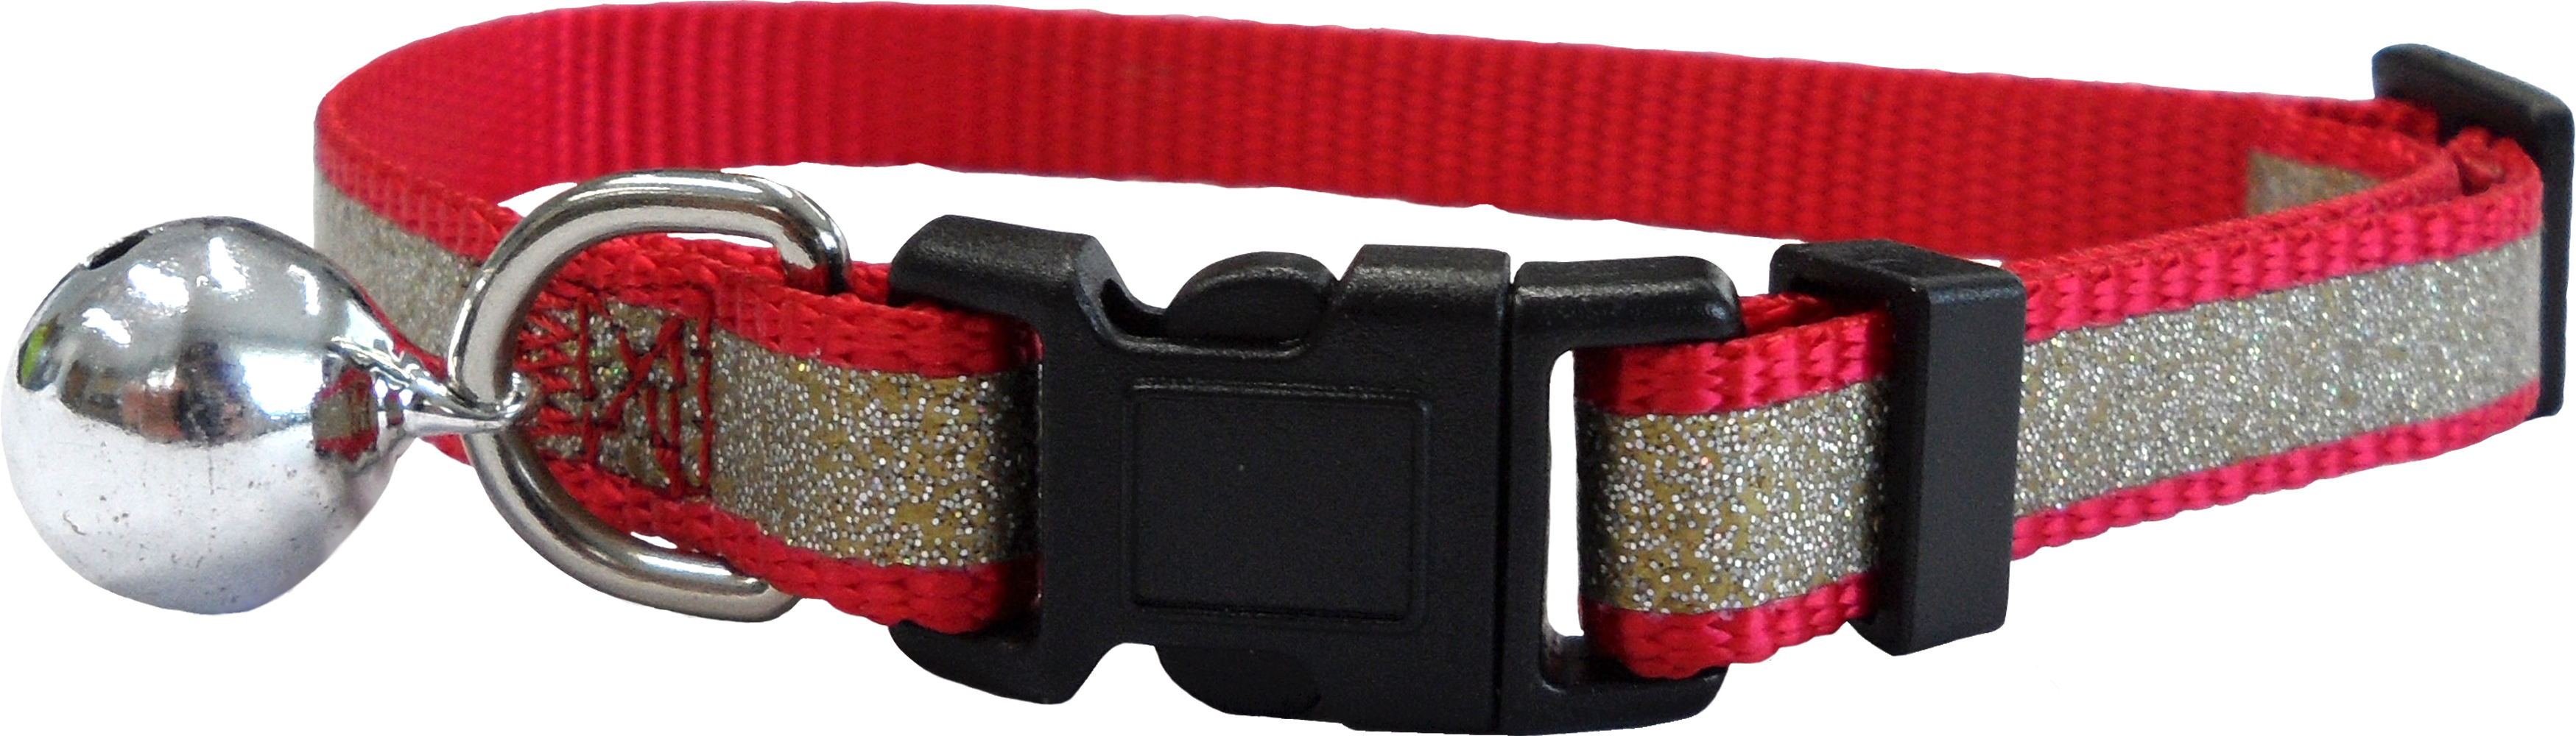 CC4063 Reflective Glitter Cat Collar Red LR